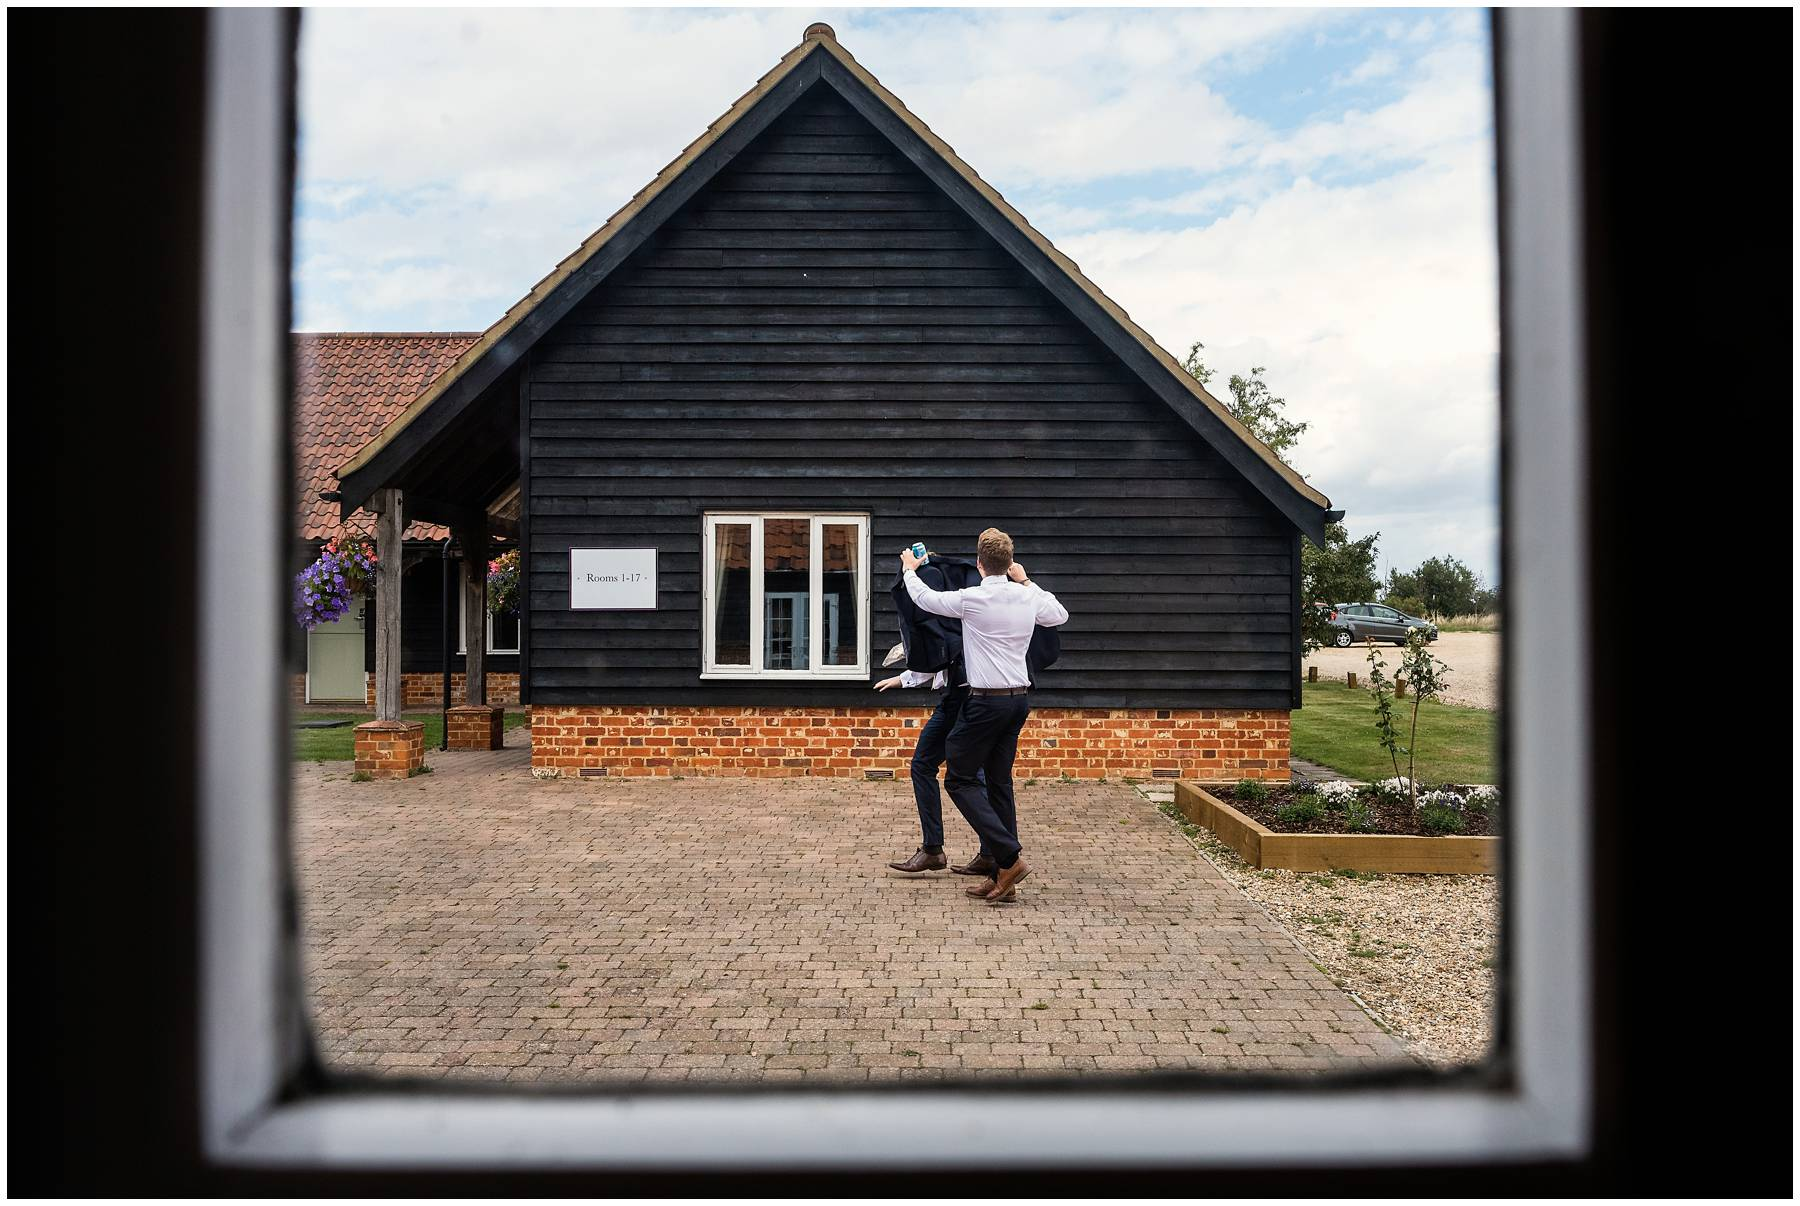 Reportage Wedding Photographer at Vaulty Manor